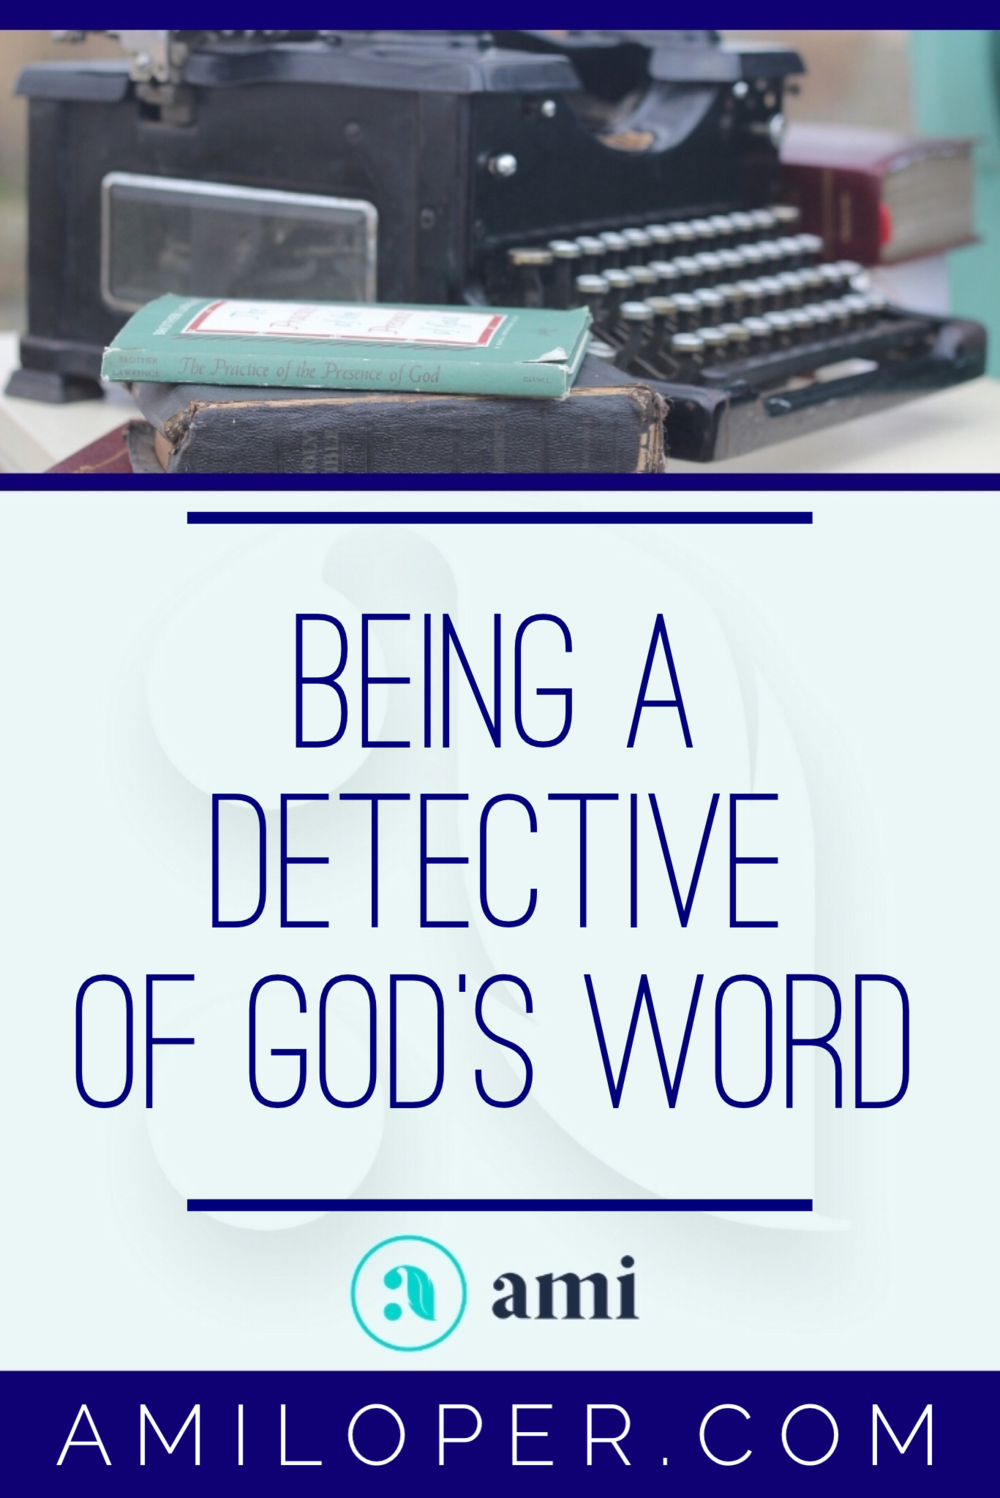 Like treasures of precious gems, there are beautiful truths in the Word of God that, given a little effort, could be mined by any of us. God has treasures awaiting you! Isn't it time we devoted ourselves to letting God show us the beautiful things in His Word? #BibleStudy #ChristianBlog